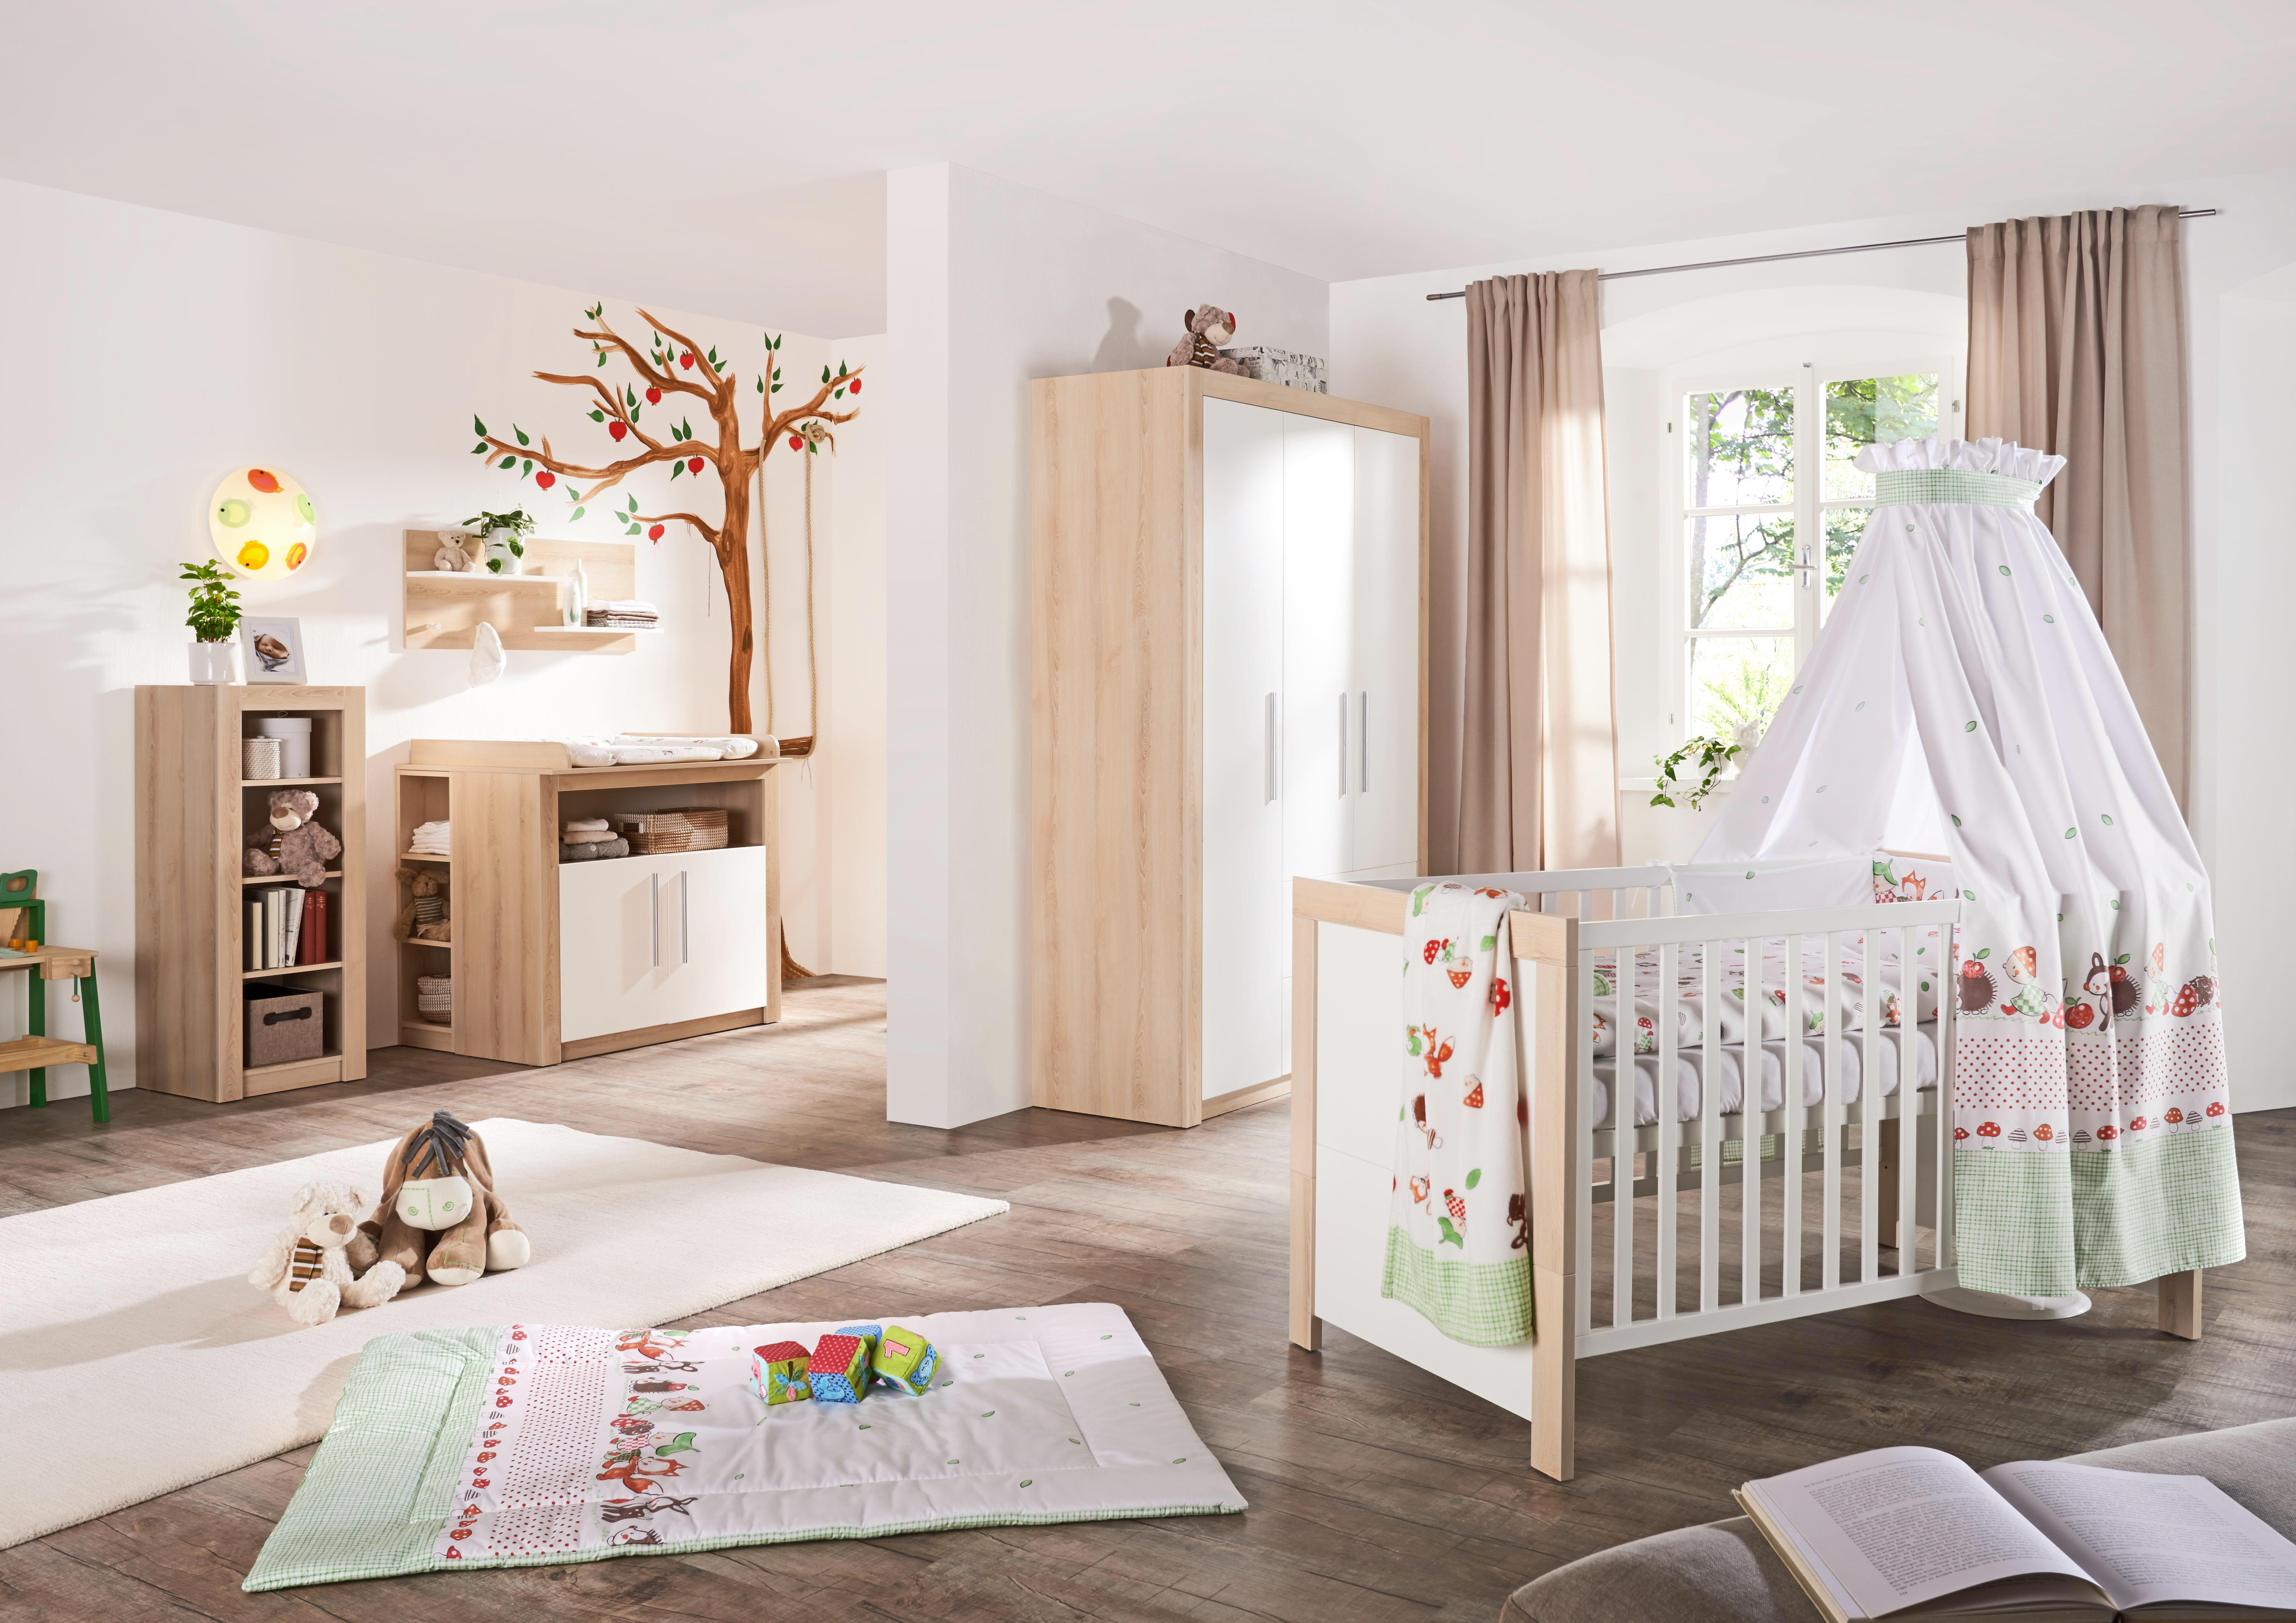 Paradies Baby Bettdecken Set Paradies Bettdecken Baby Sansibar Bettwäsche Creme Exklusive